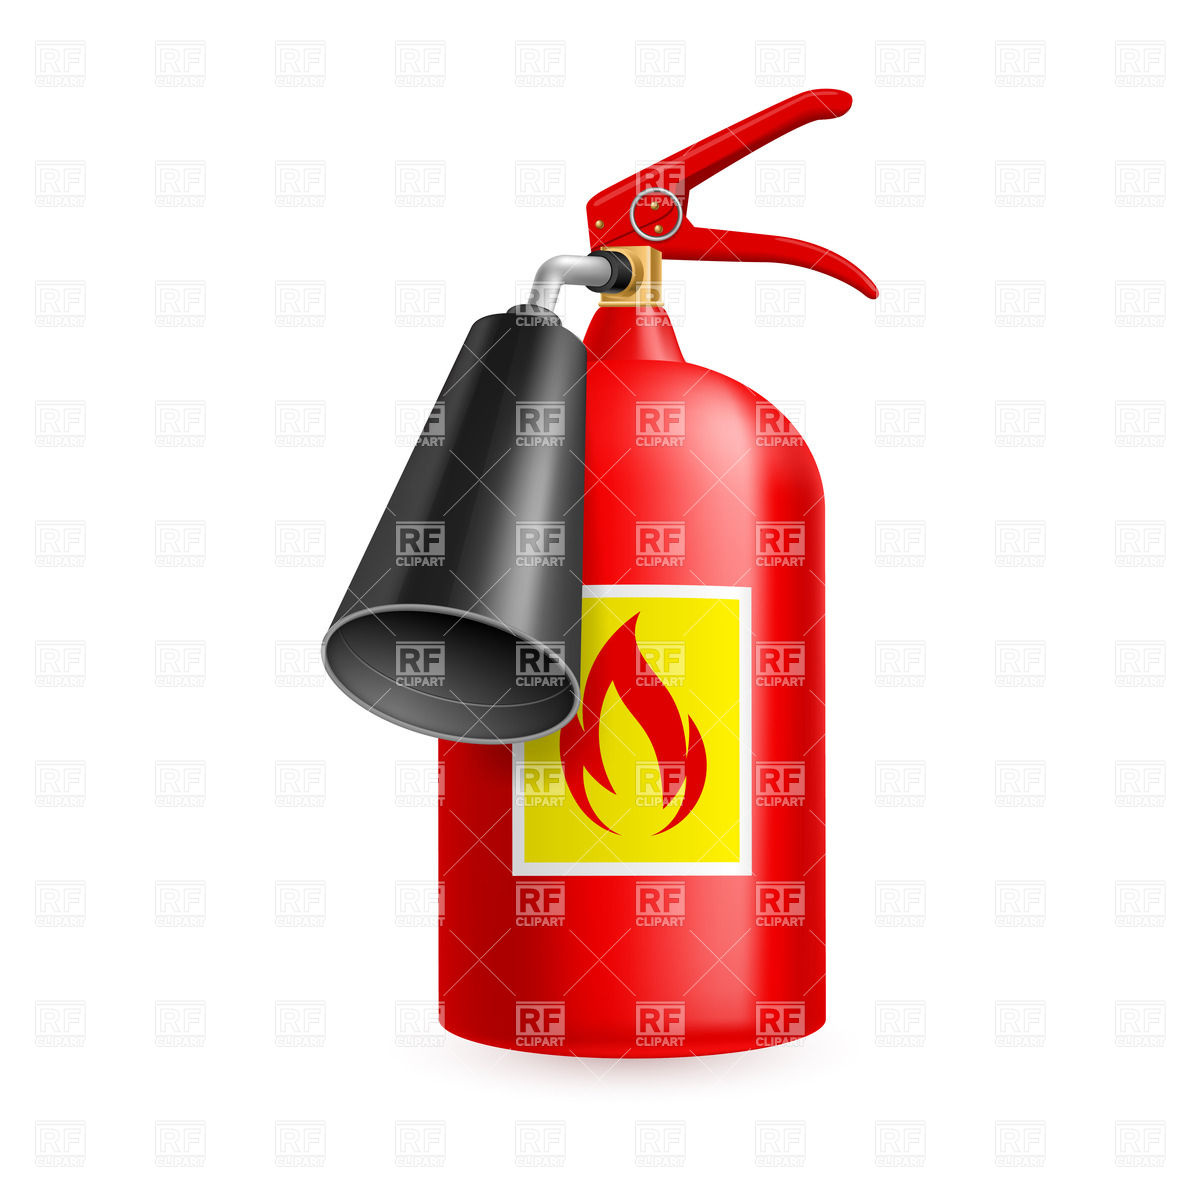 1200x1200 Carbon Dioxide (Co2) Fire Extinguisher Isolated On White